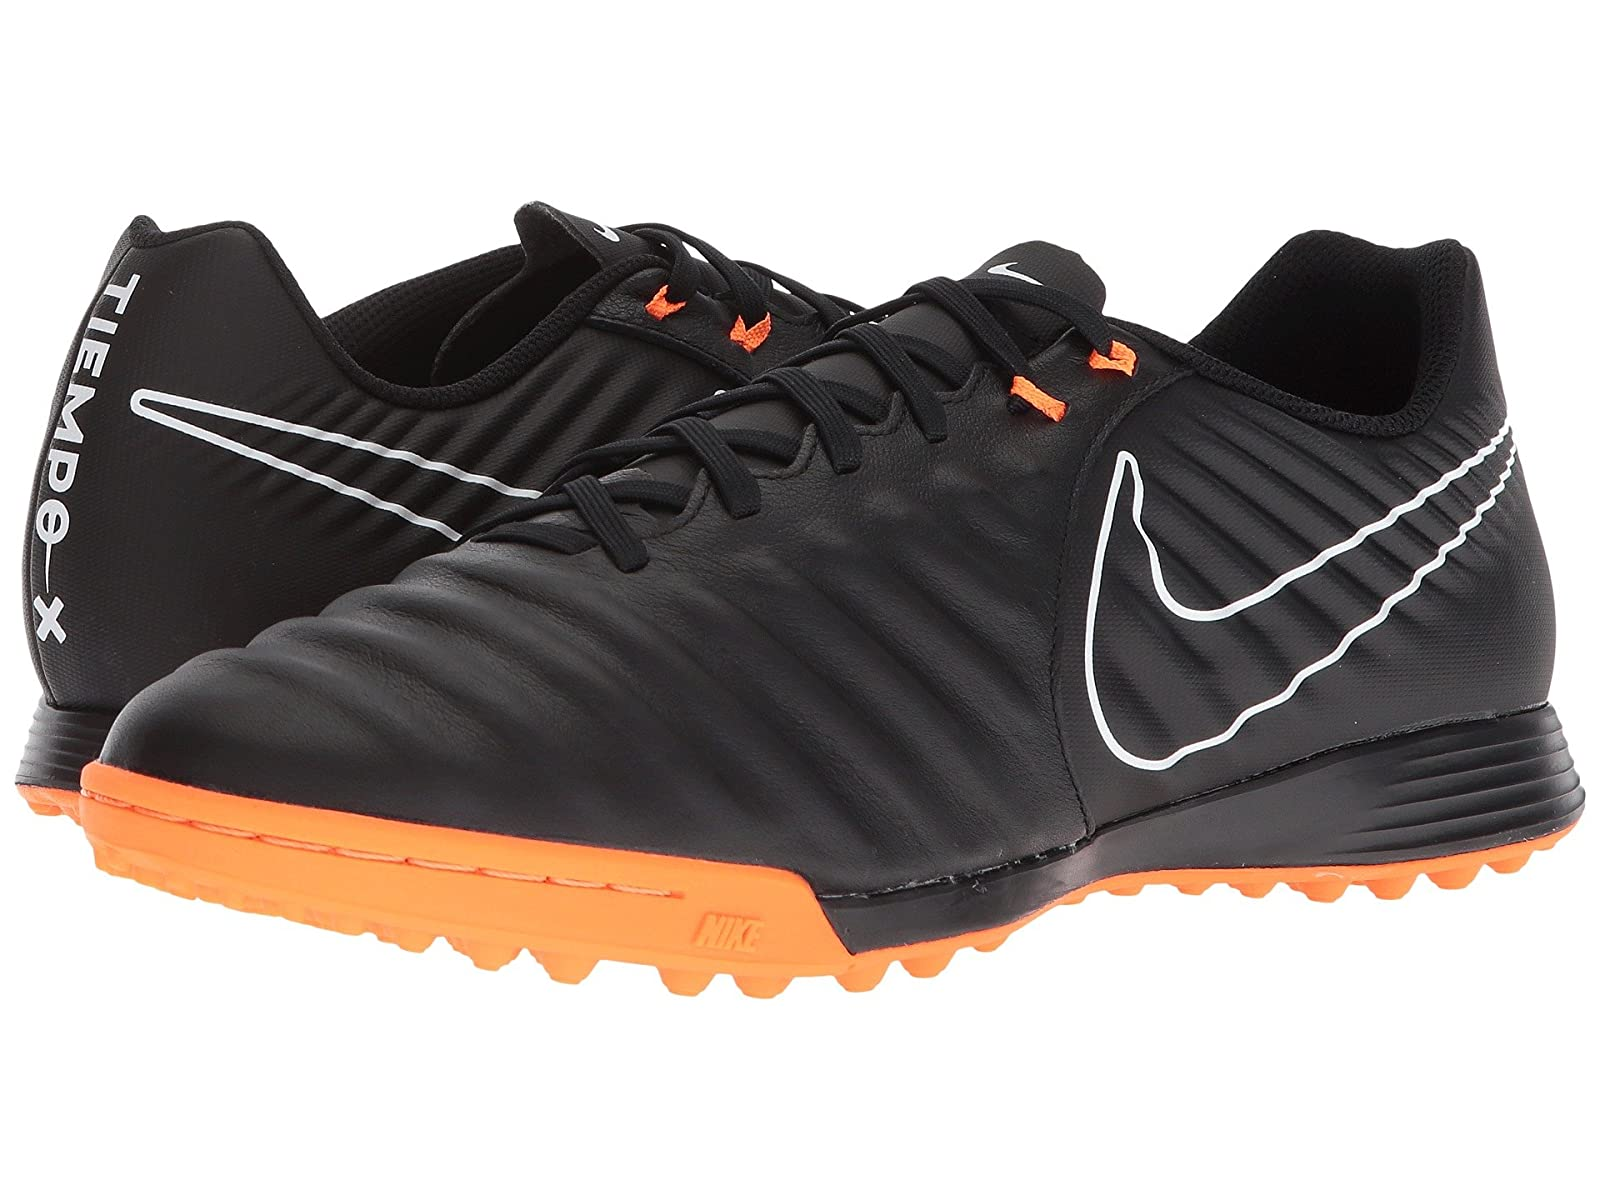 Nike Tiempo LegendX 7 Academy TFCheap and distinctive eye-catching shoes